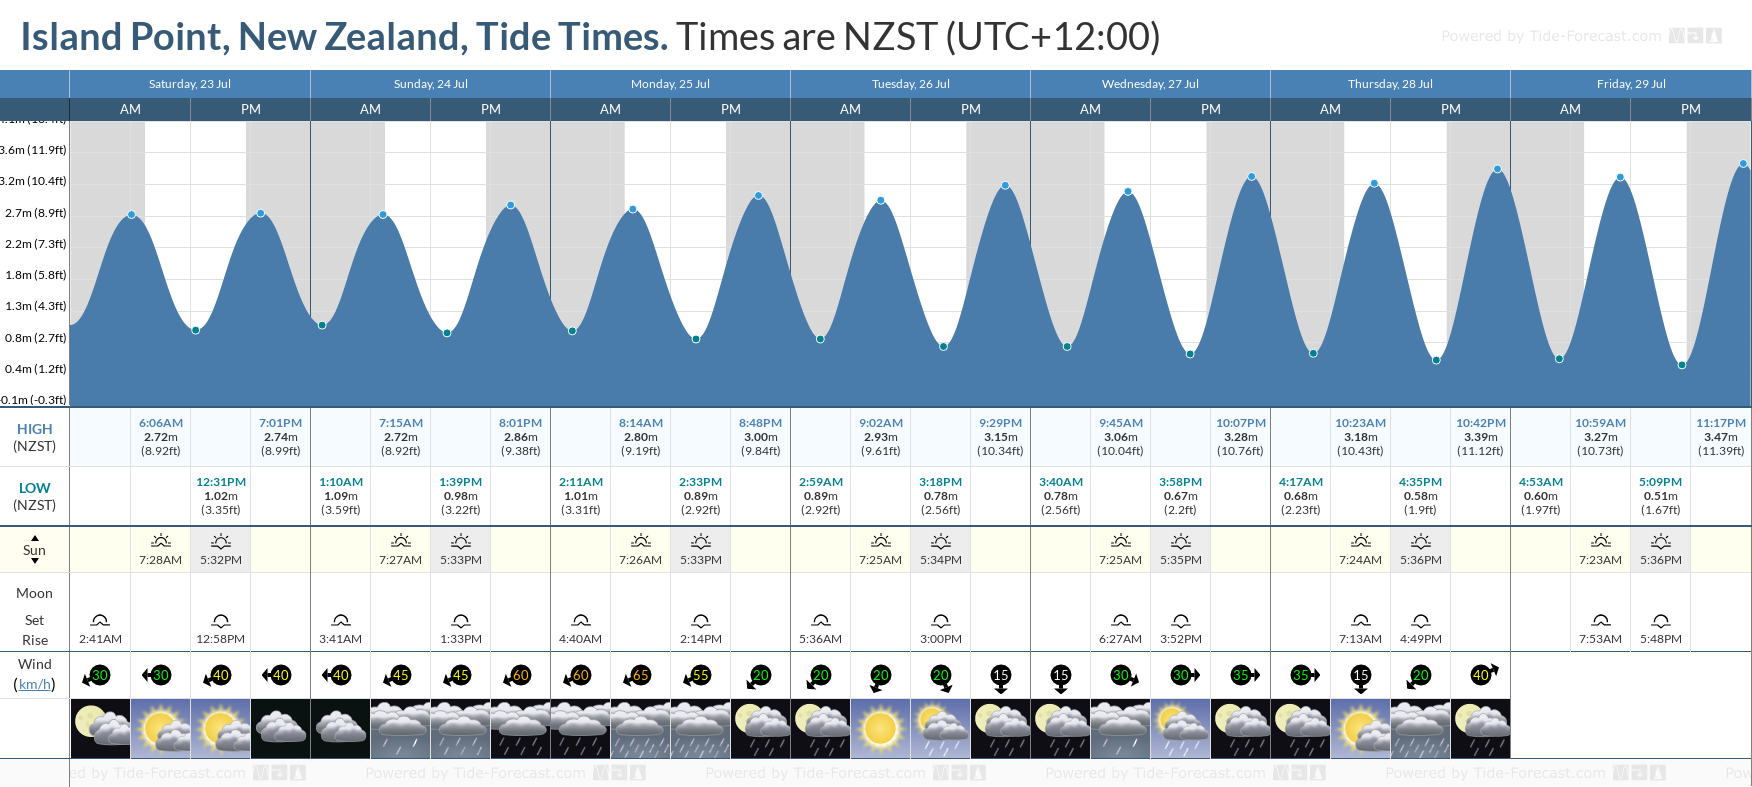 Island Point, New Zealand Tide Chart including high and low tide tide times for the next 7 days